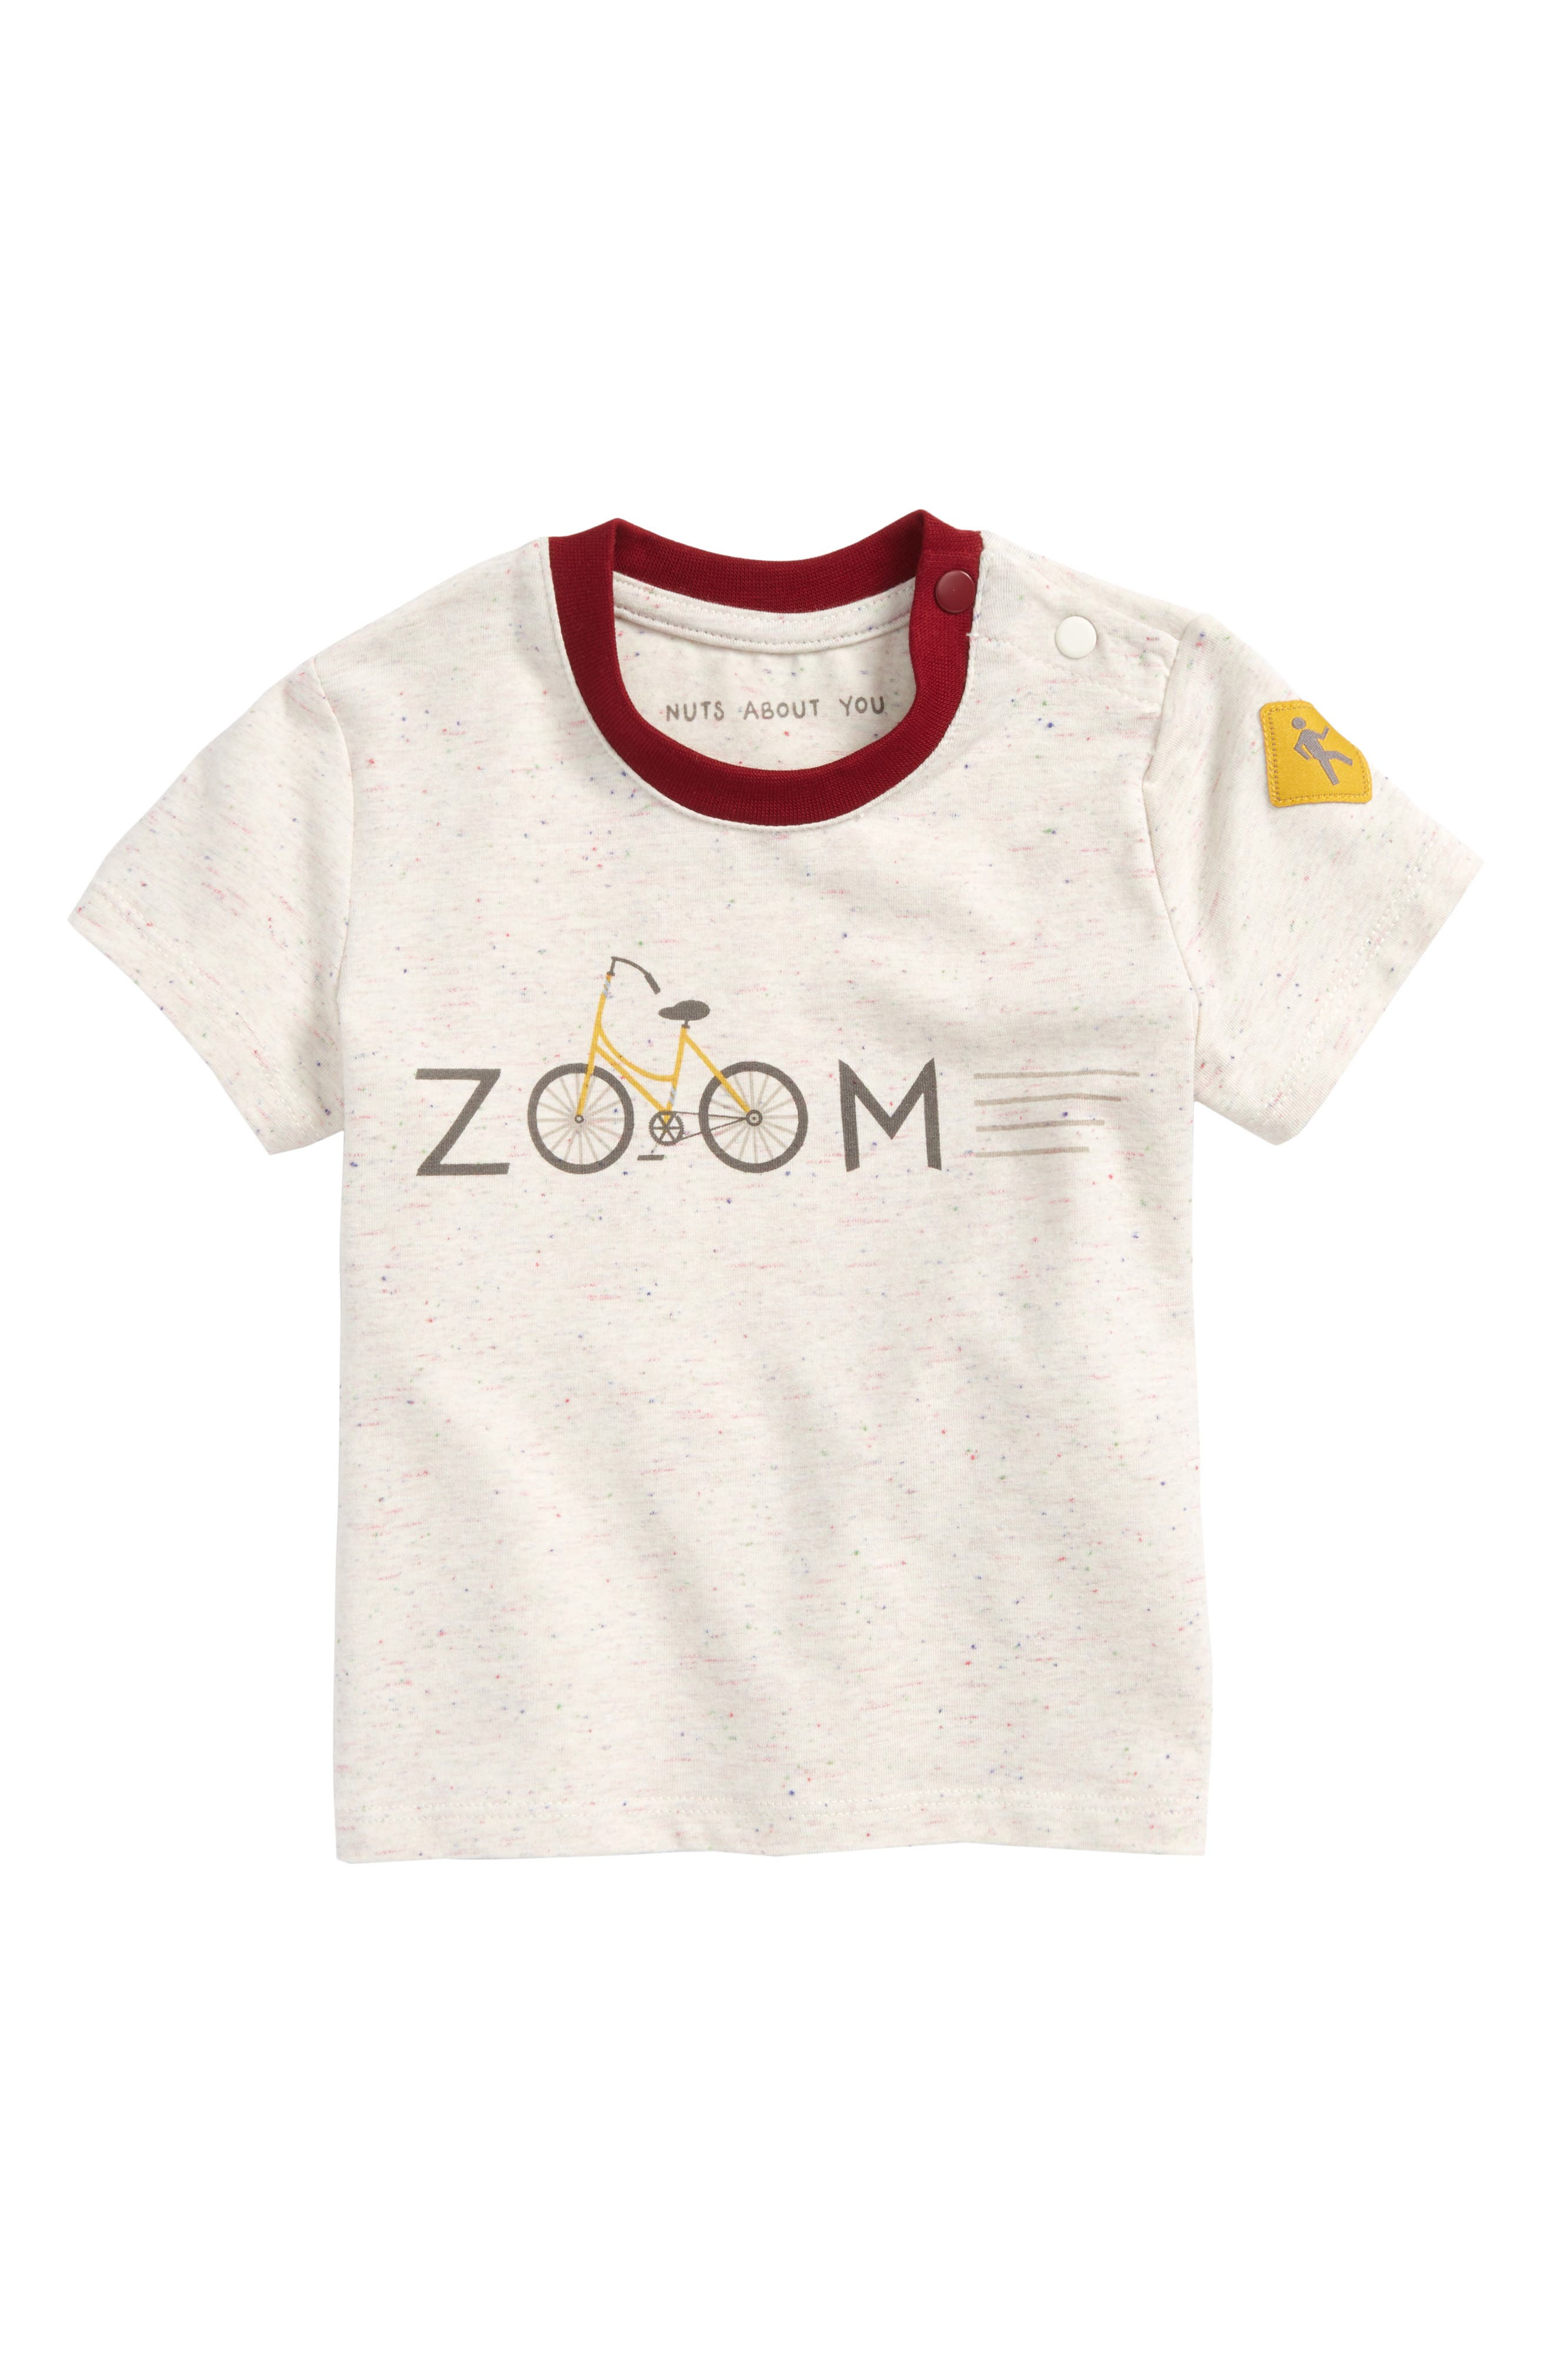 Zoom Graphic T-Shirt,                         Main,                         color, 100